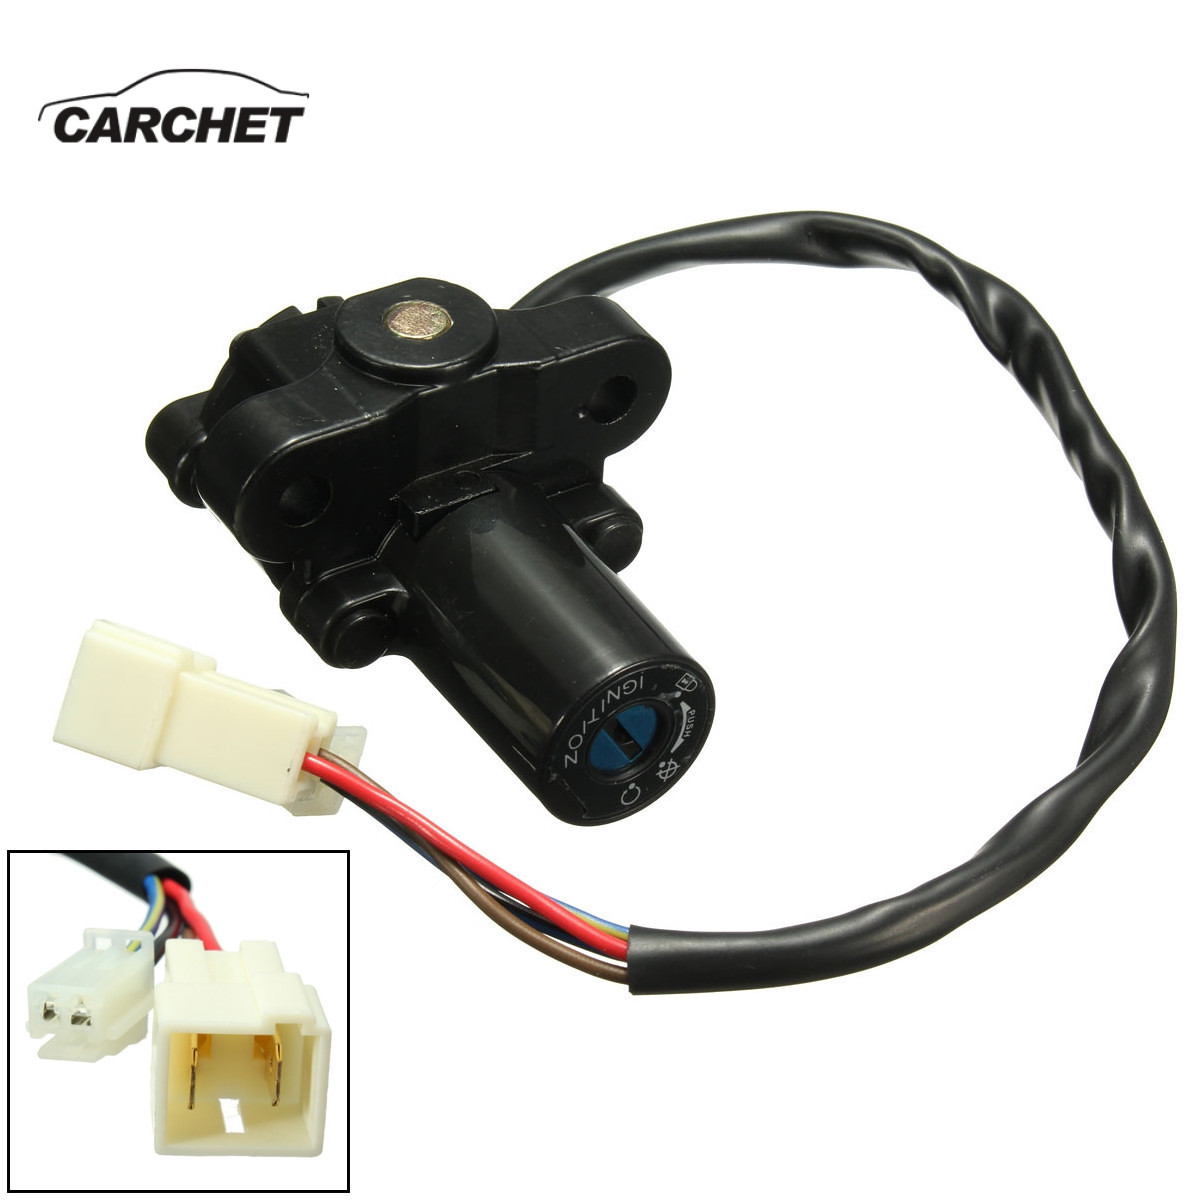 CARCHET Motorcycle Accessories Set Fuel Gas Cap + Ignition Switch + Start Switch + Key Kit Universal for Yamaha YZF R1 R6